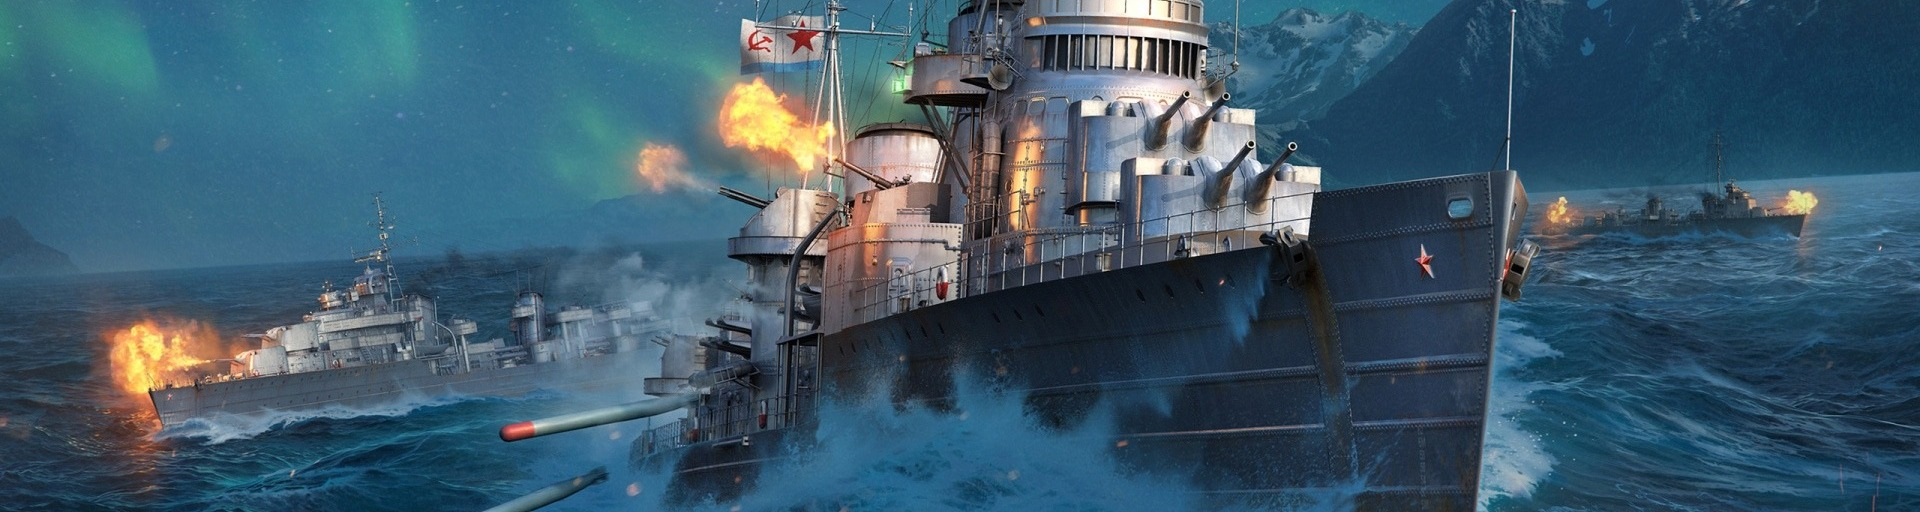 5340 Doubloons (World of Warships) US bg